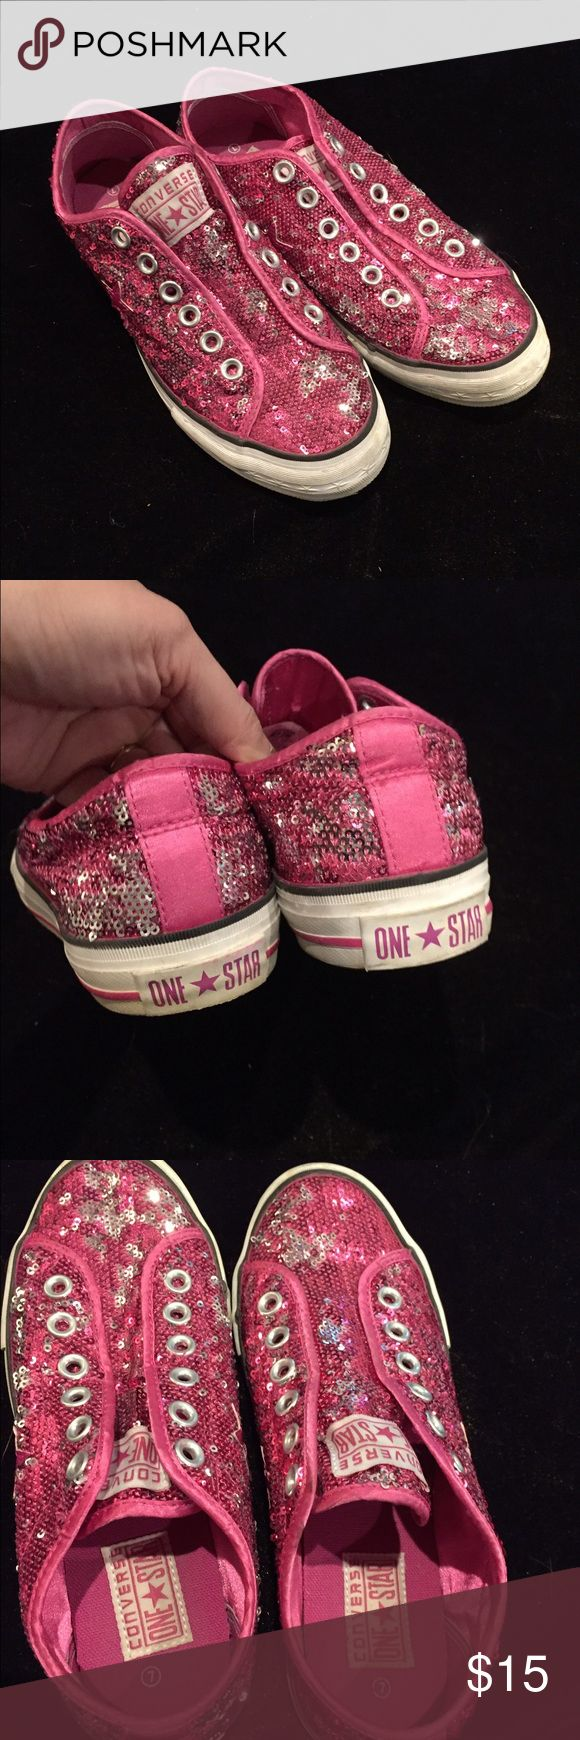 Converse One Star Sparkle Sneaks Great condition and super sparkly! Slip on style! Converse One Star Shoes